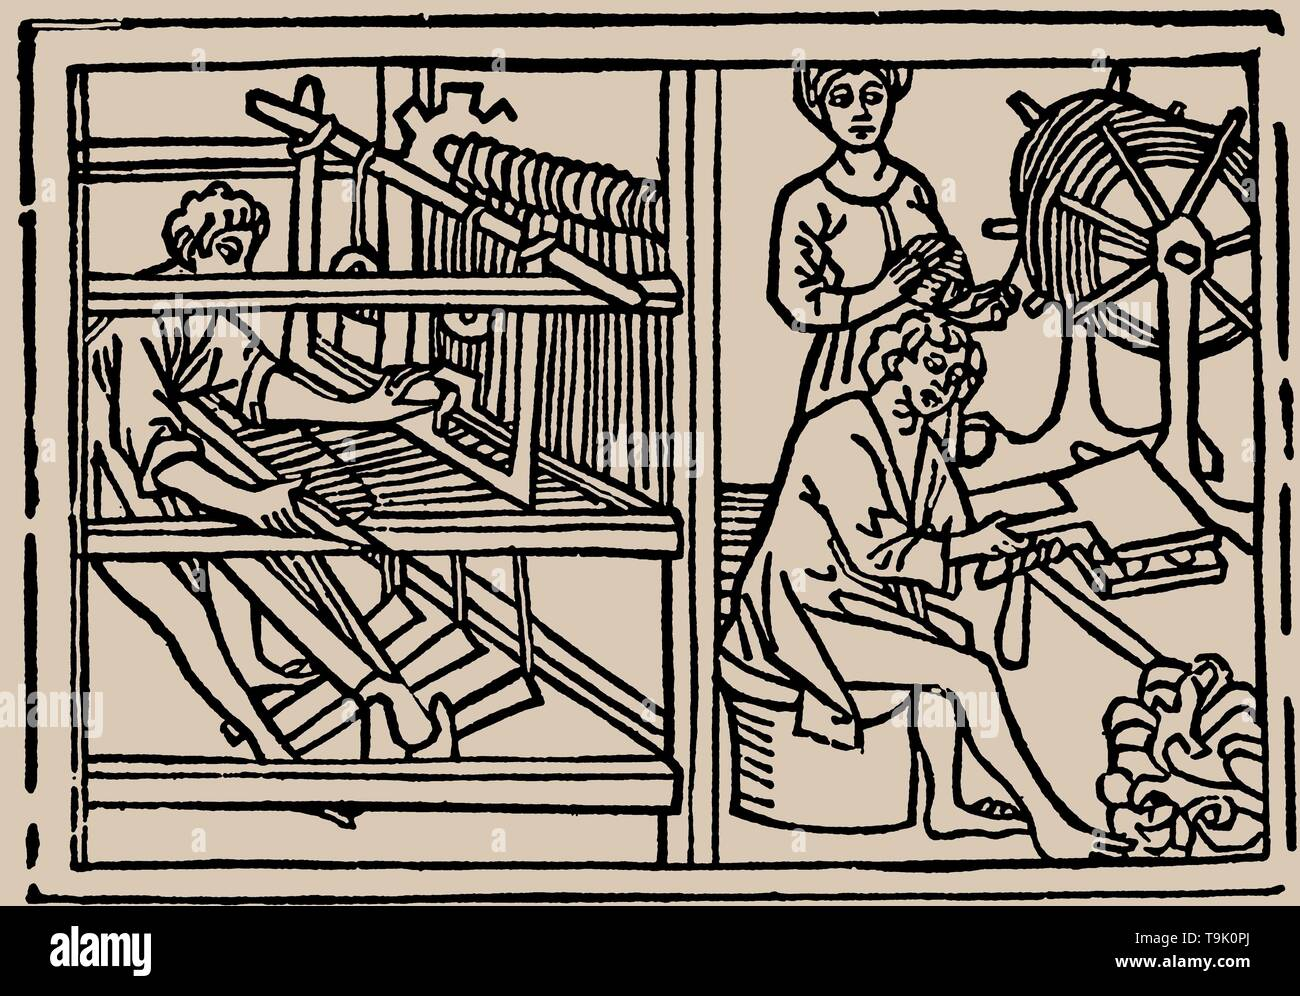 Combing, spinning and weaving of wool. From Speculum Vitae Humanae by Rodericus Zamorensis. Museum: PRIVATE COLLECTION. Author: ANONYMOUS. - Stock Image